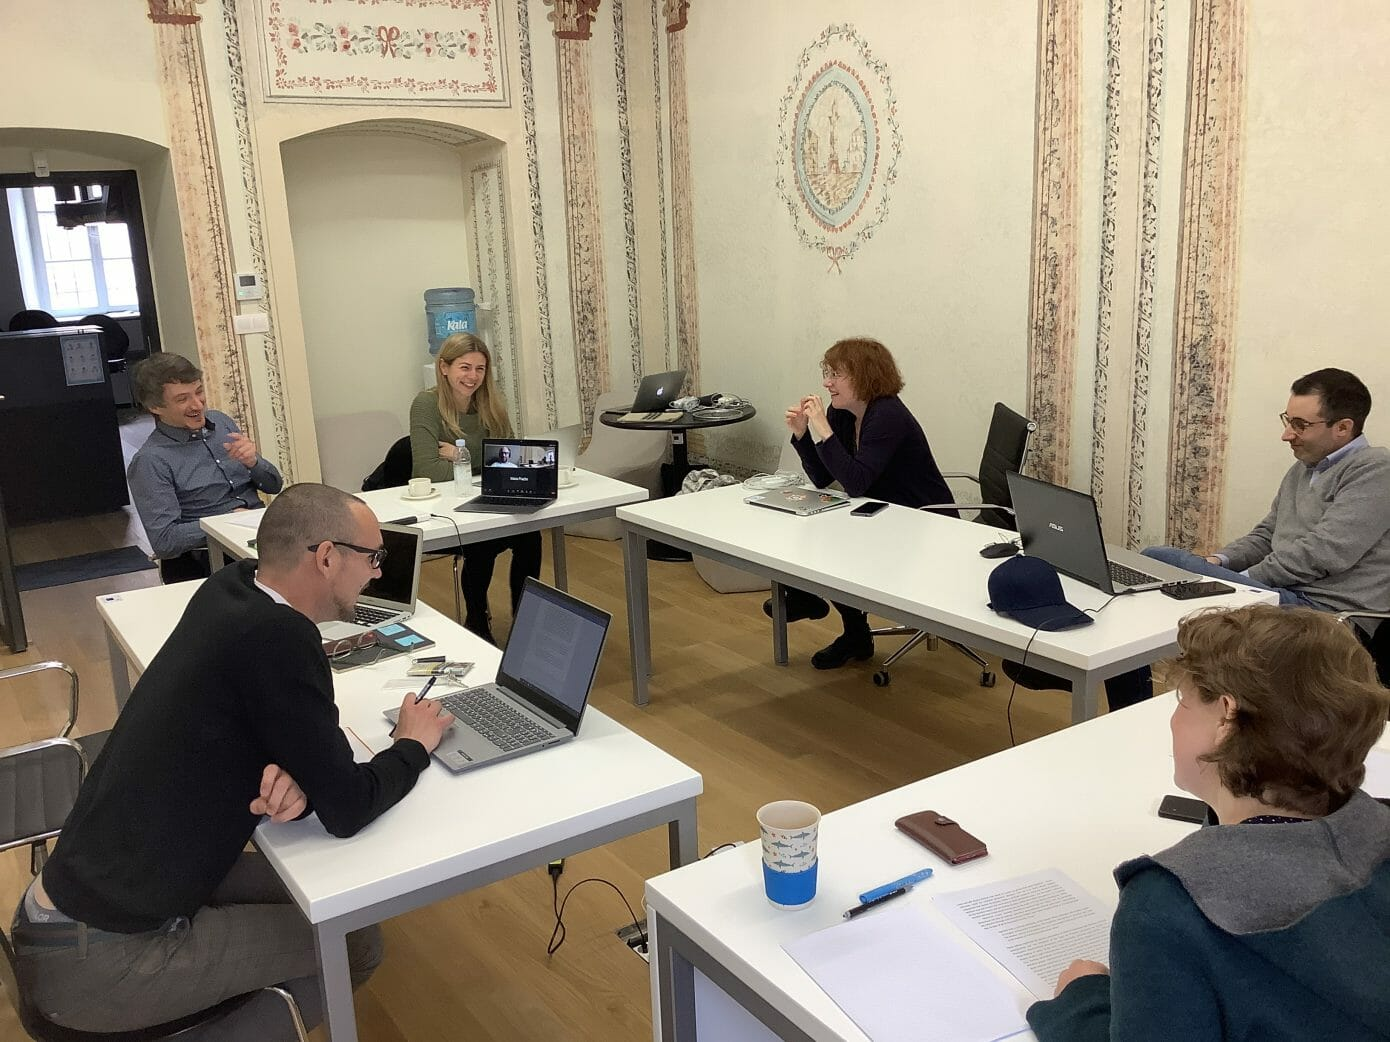 CAS SEE Fellowship Program For researchers at the University of Rijeka 2021